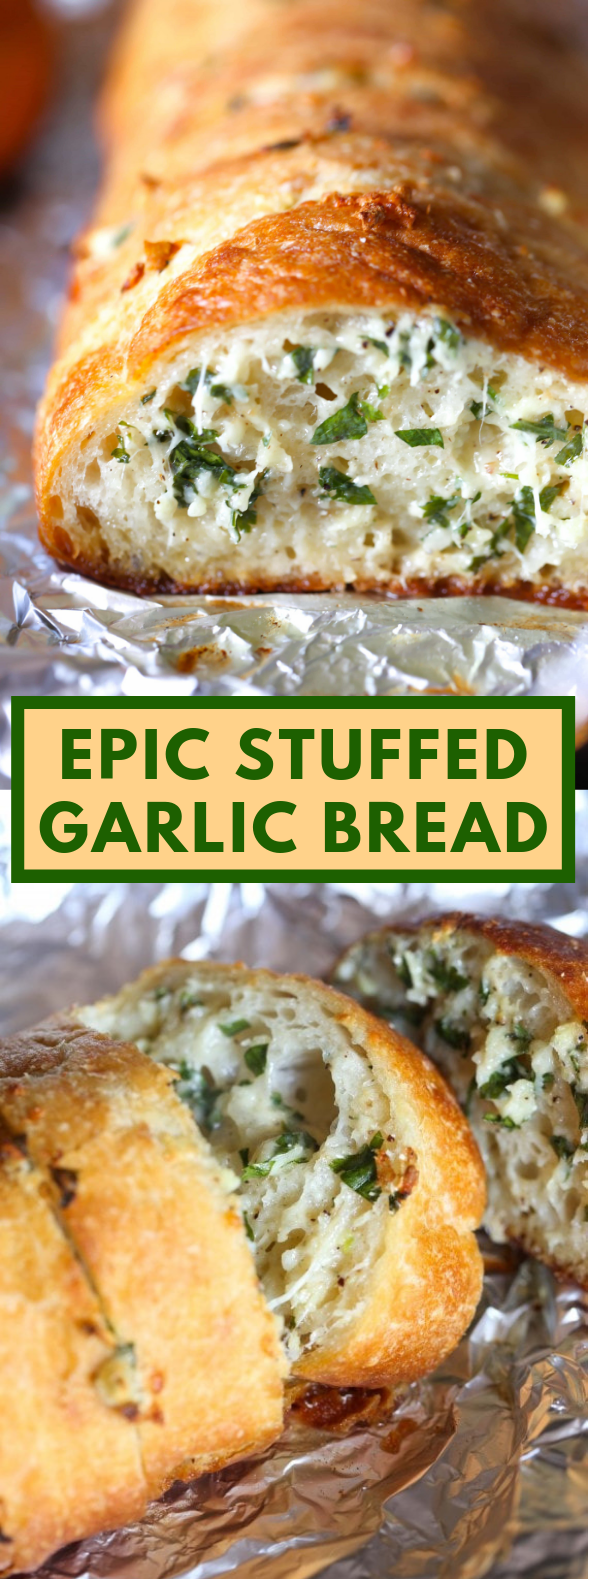 EPIC STUFFED GARLIC BREAD #vegetarian #food